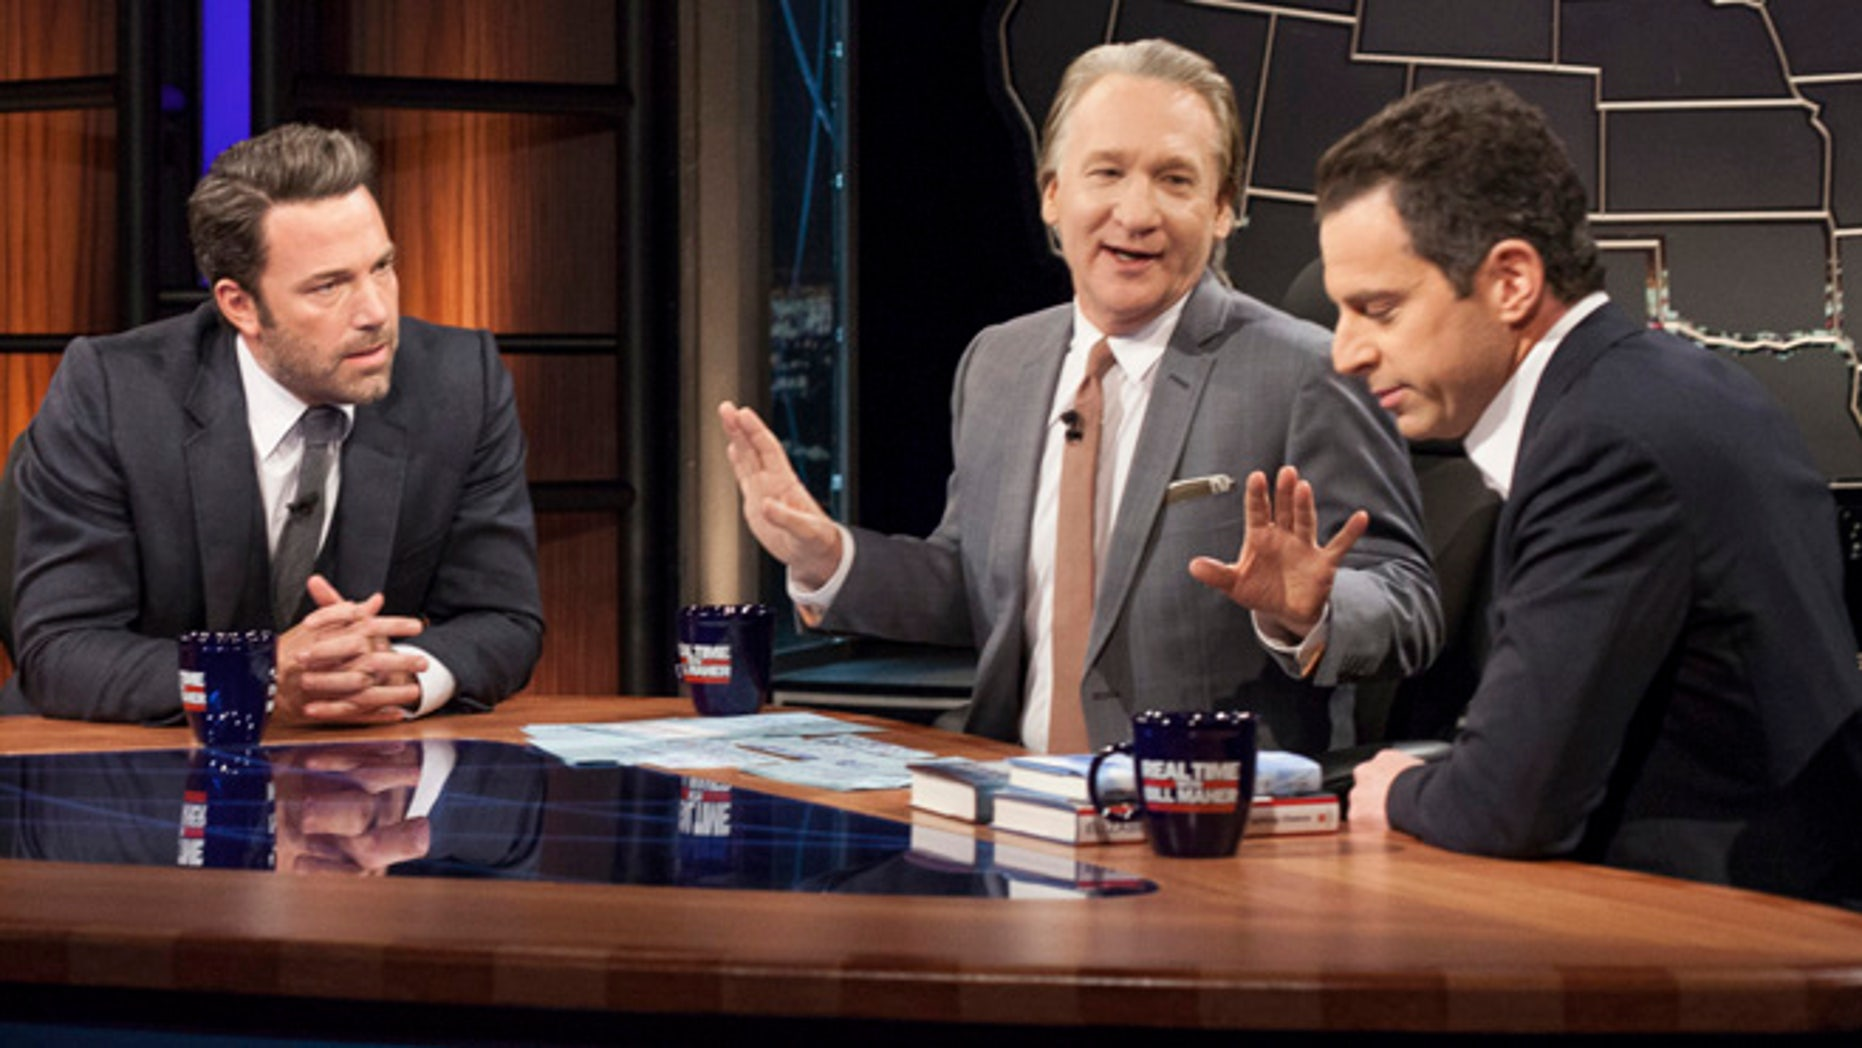 """In this Friday, Oct. 3, 2014, image released by HBO, host Bill Maher, center, talks with actor Ben Affleck, left, and Sam Harris, author of """"Waking Up: A Guide to Spirituality Without Religion"""", during """"Real Time With Bill Maher,"""" in Los Angeles. (AP Photo/HBO) ORG XMIT: NY114"""